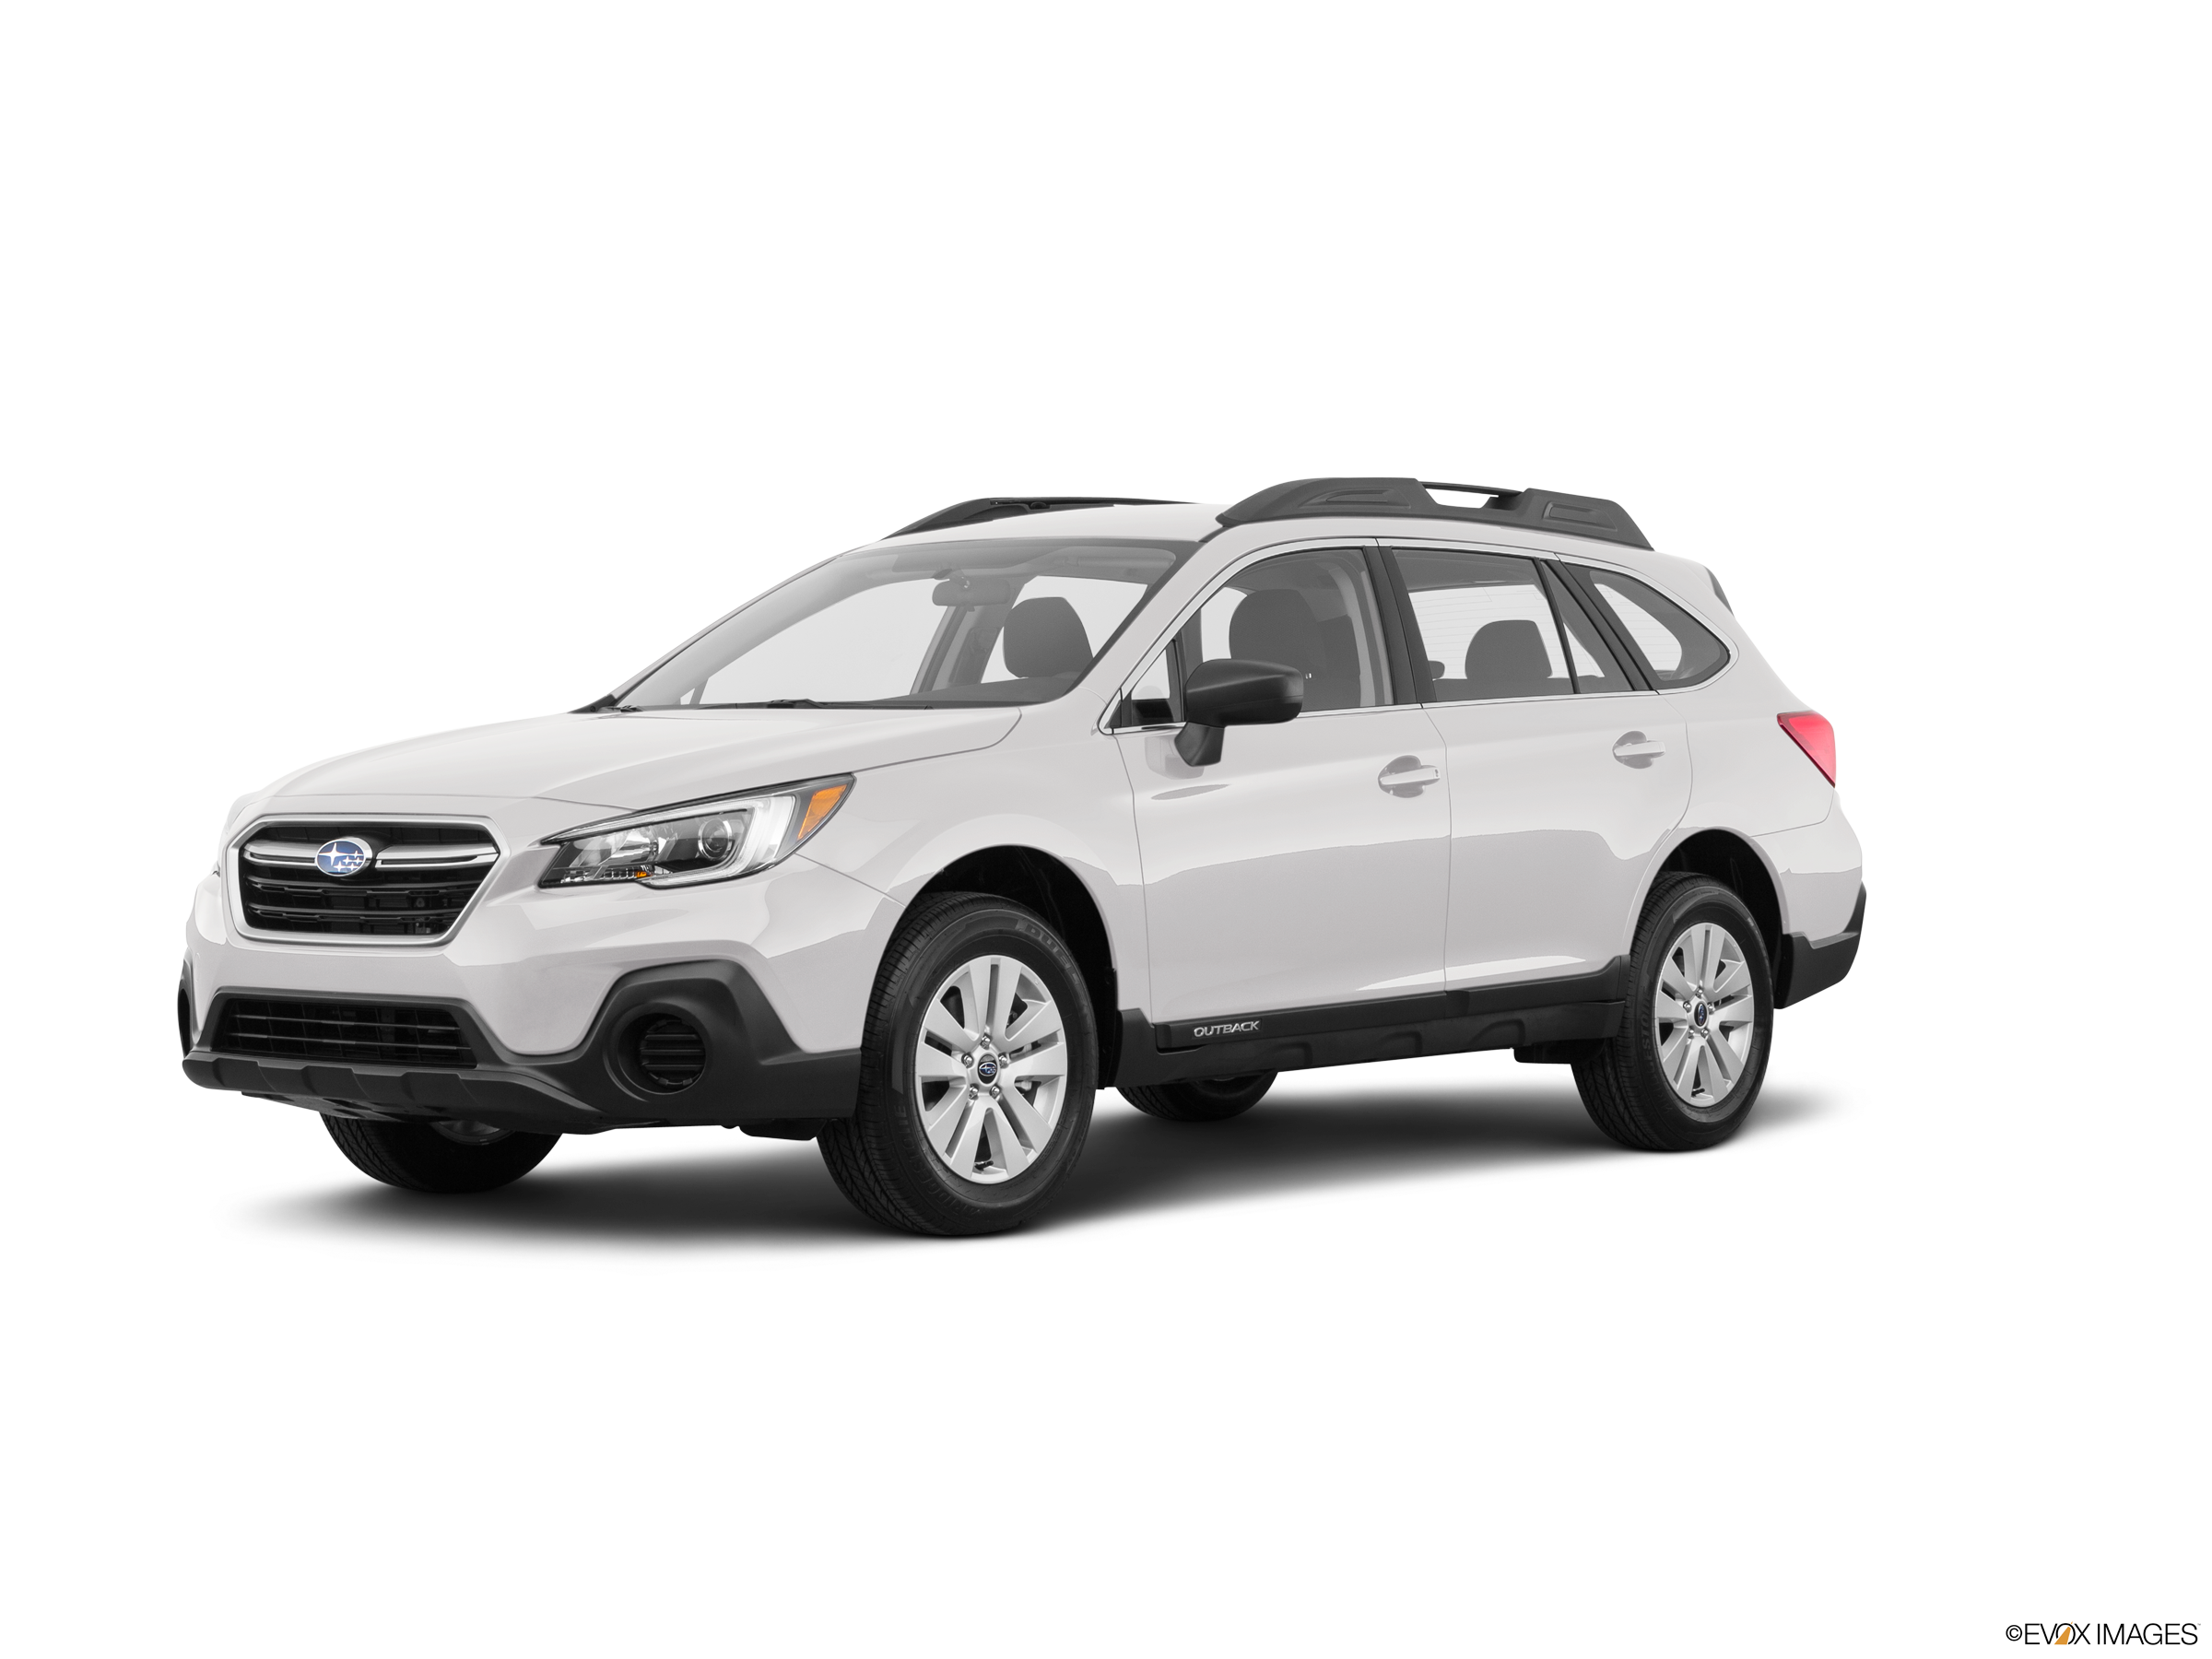 25 Best-Selling SUVs of 2018 - Subaru Outback